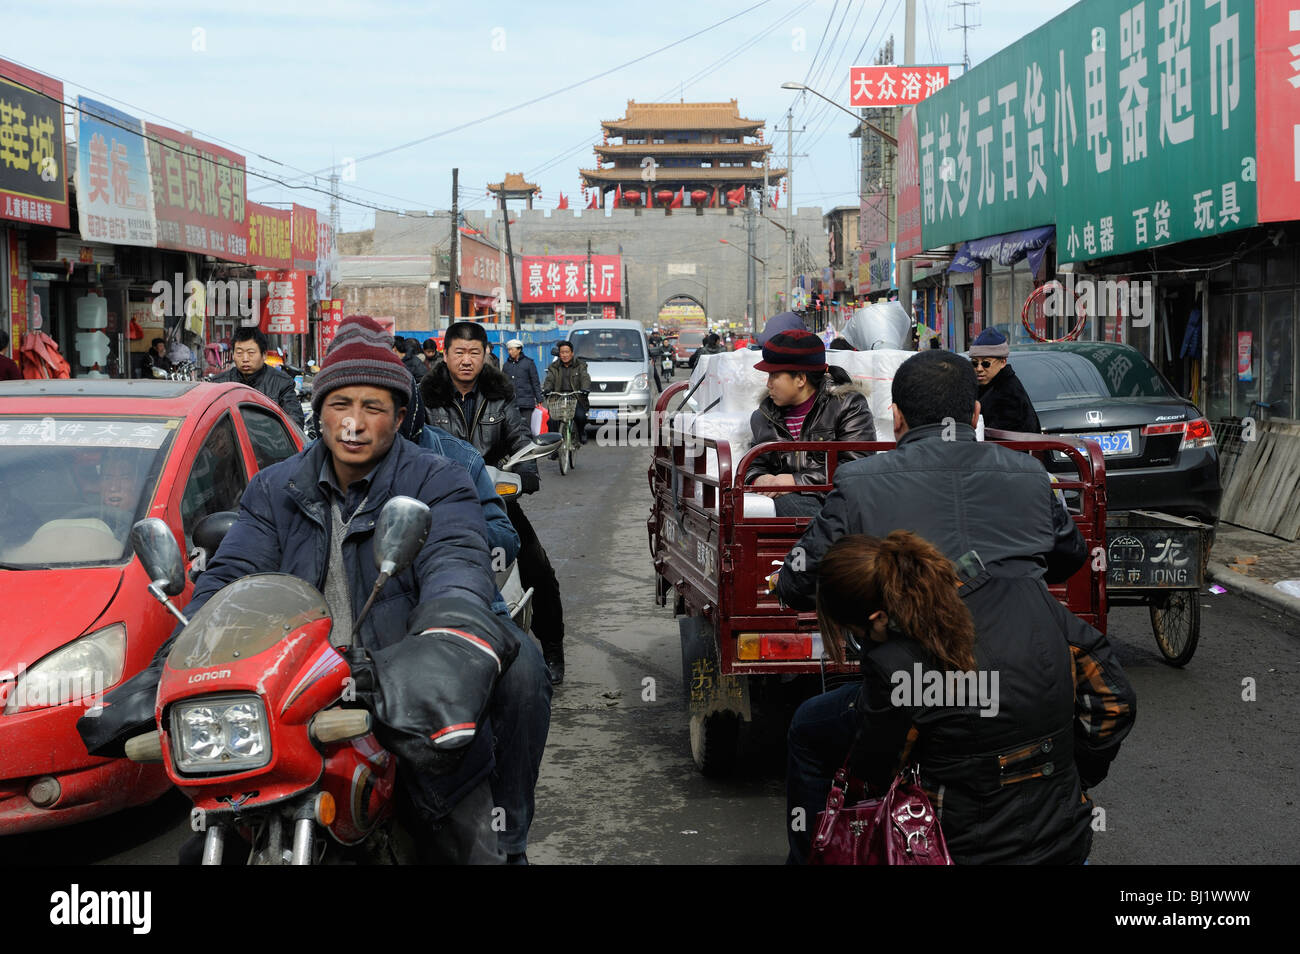 People in the street of Yuxian, Hebei province, a typical town in Western China. 02-Mar-2010 - Stock Image